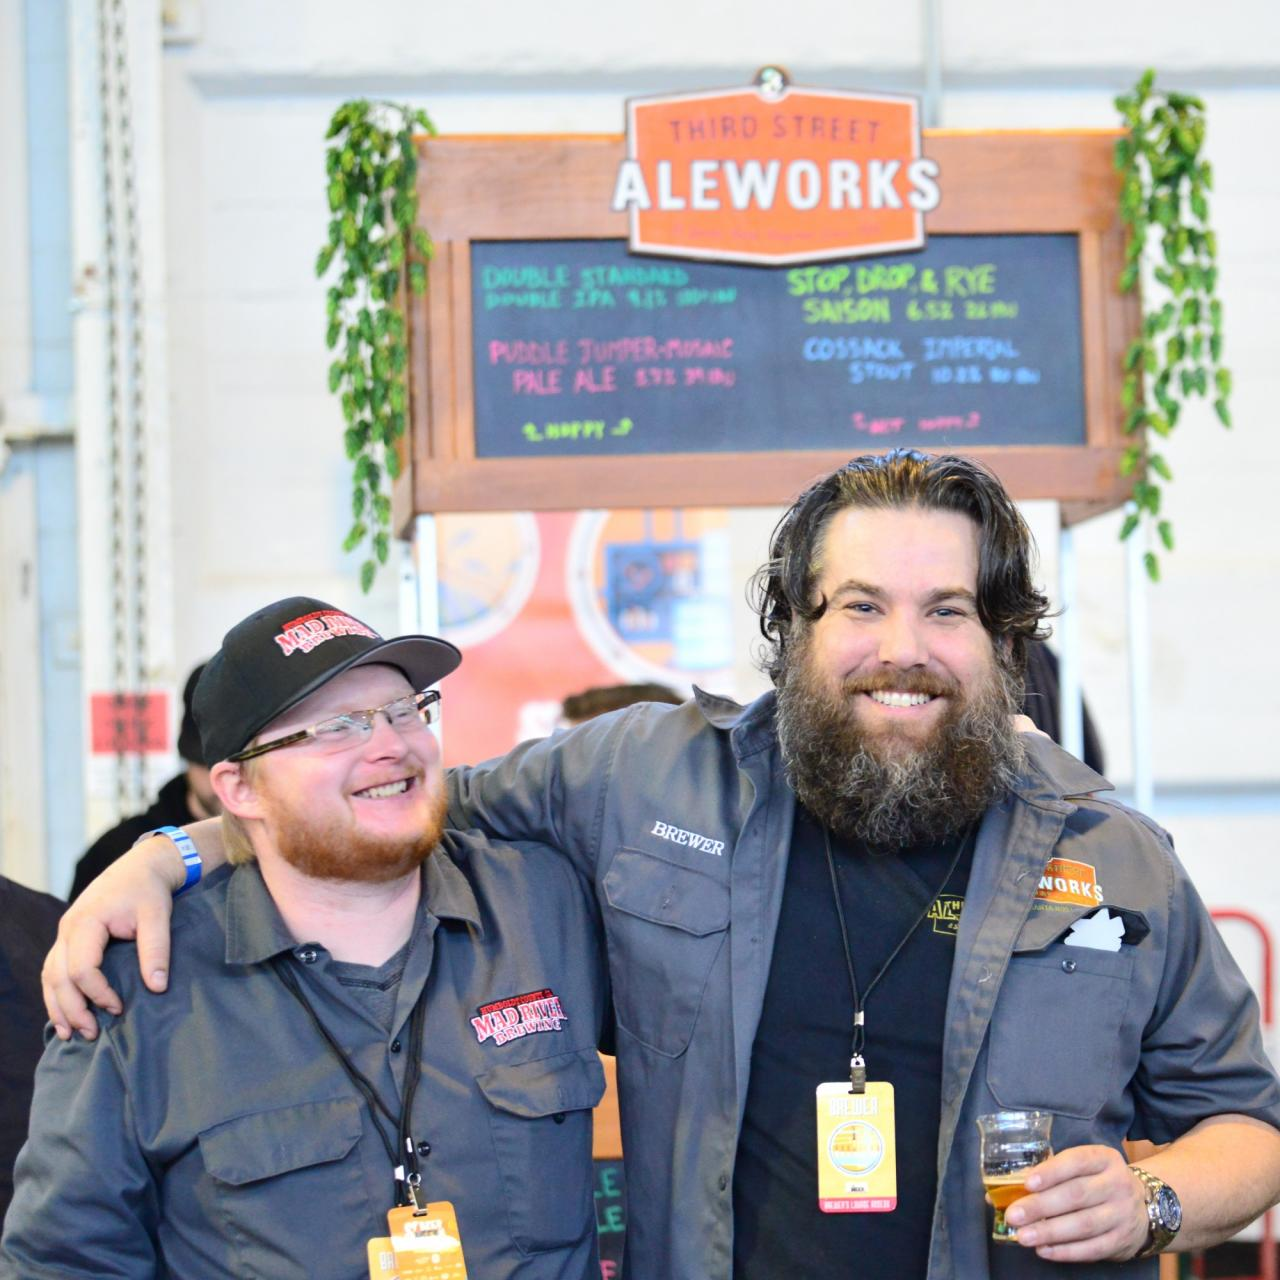 Brewer, Adam De la Montanya and his crew have fun pouring their beers from Third Street Aleworks.